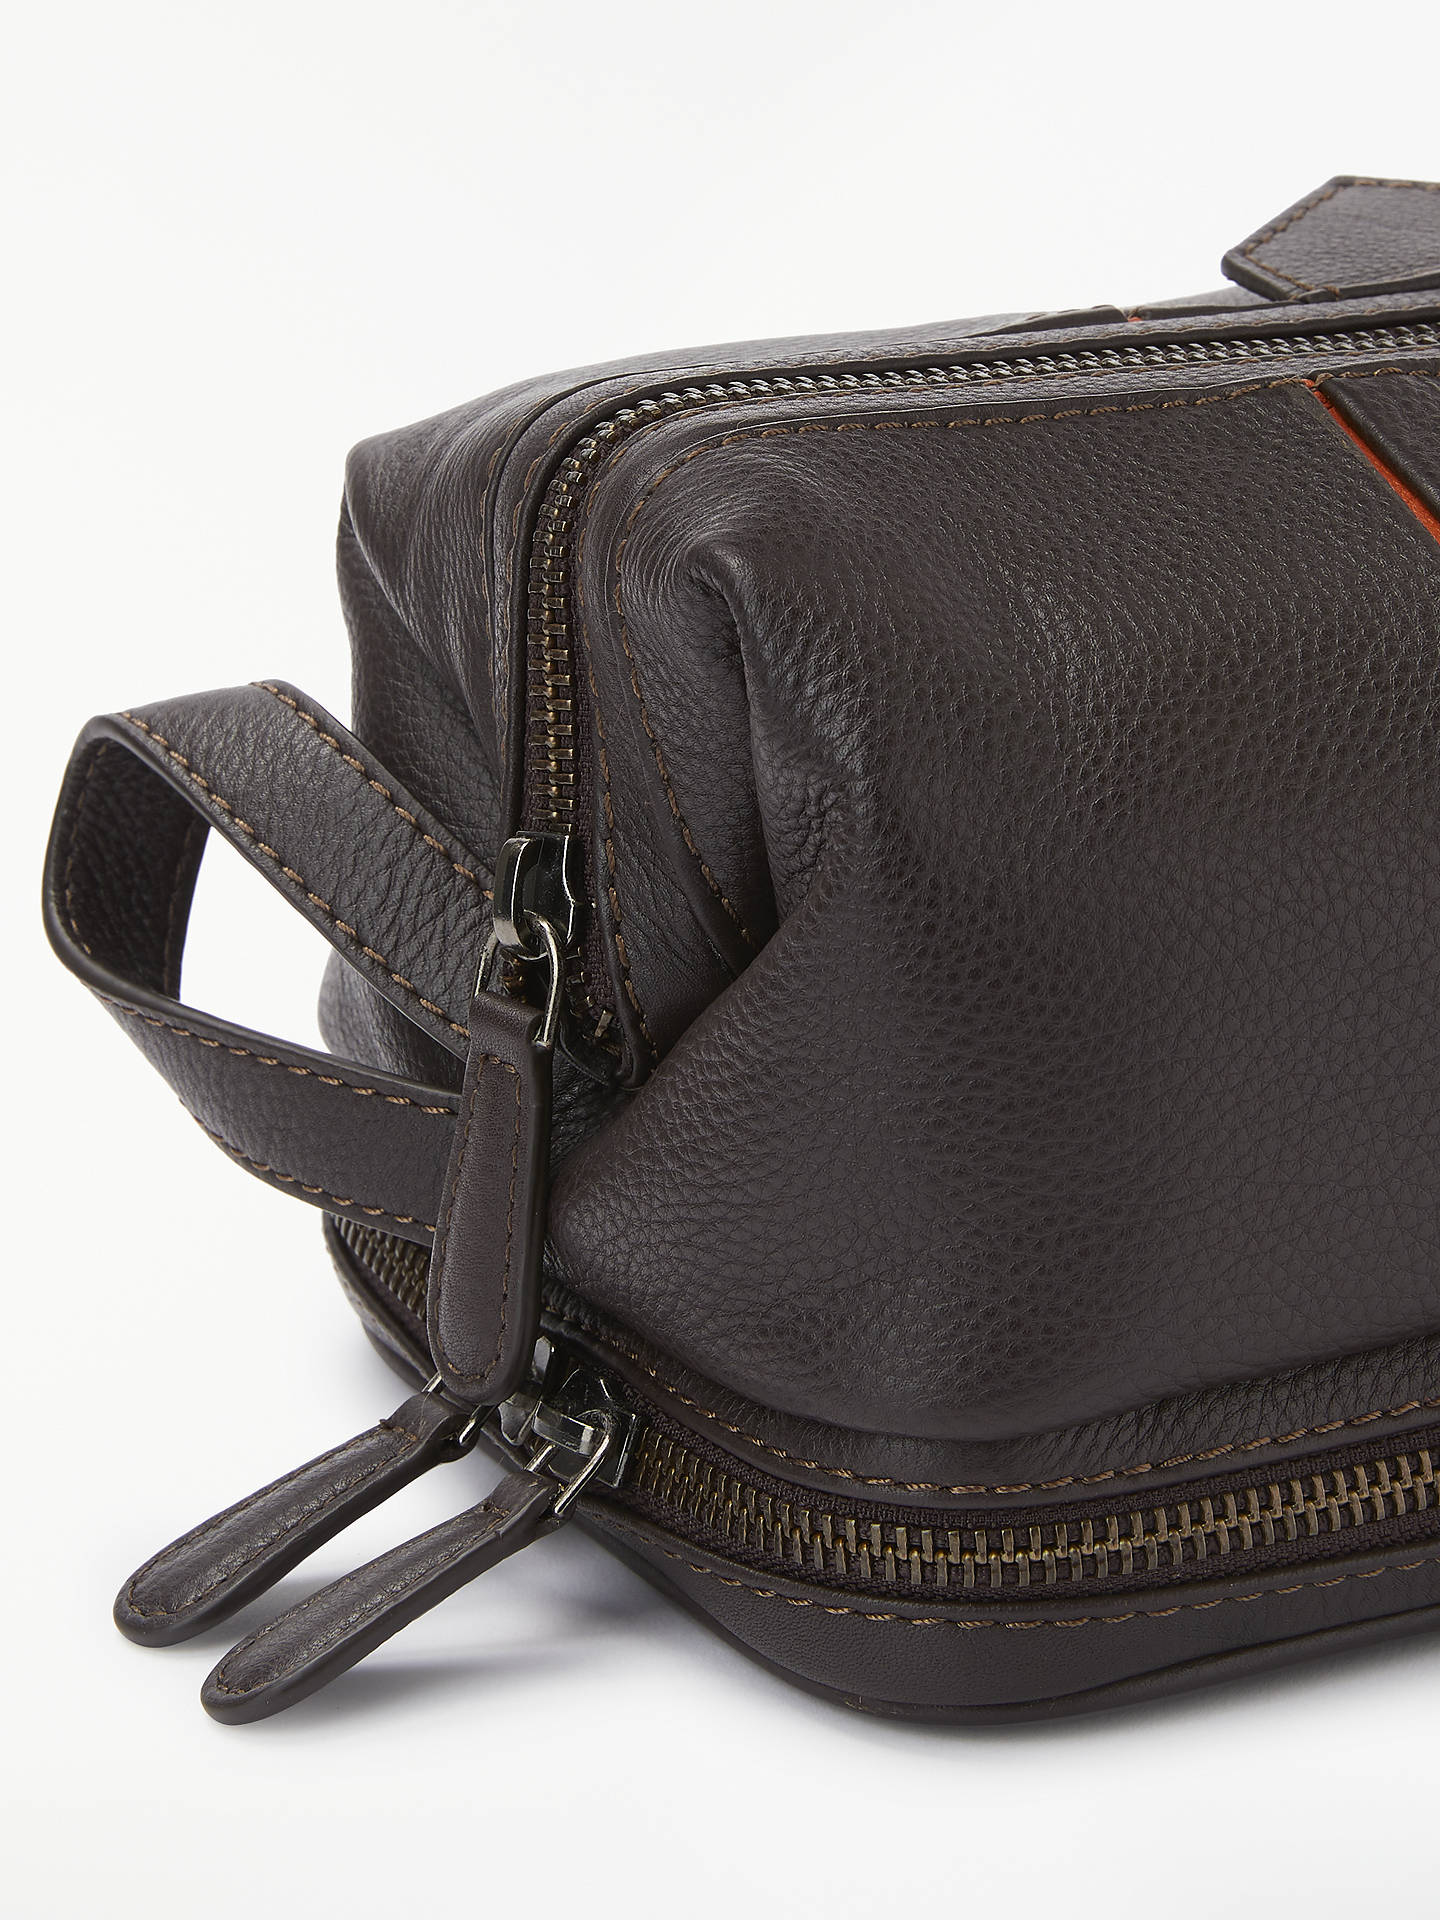 3d8c9a233 ... Buy Ted Baker Teekee Striped Leather Wash Bag